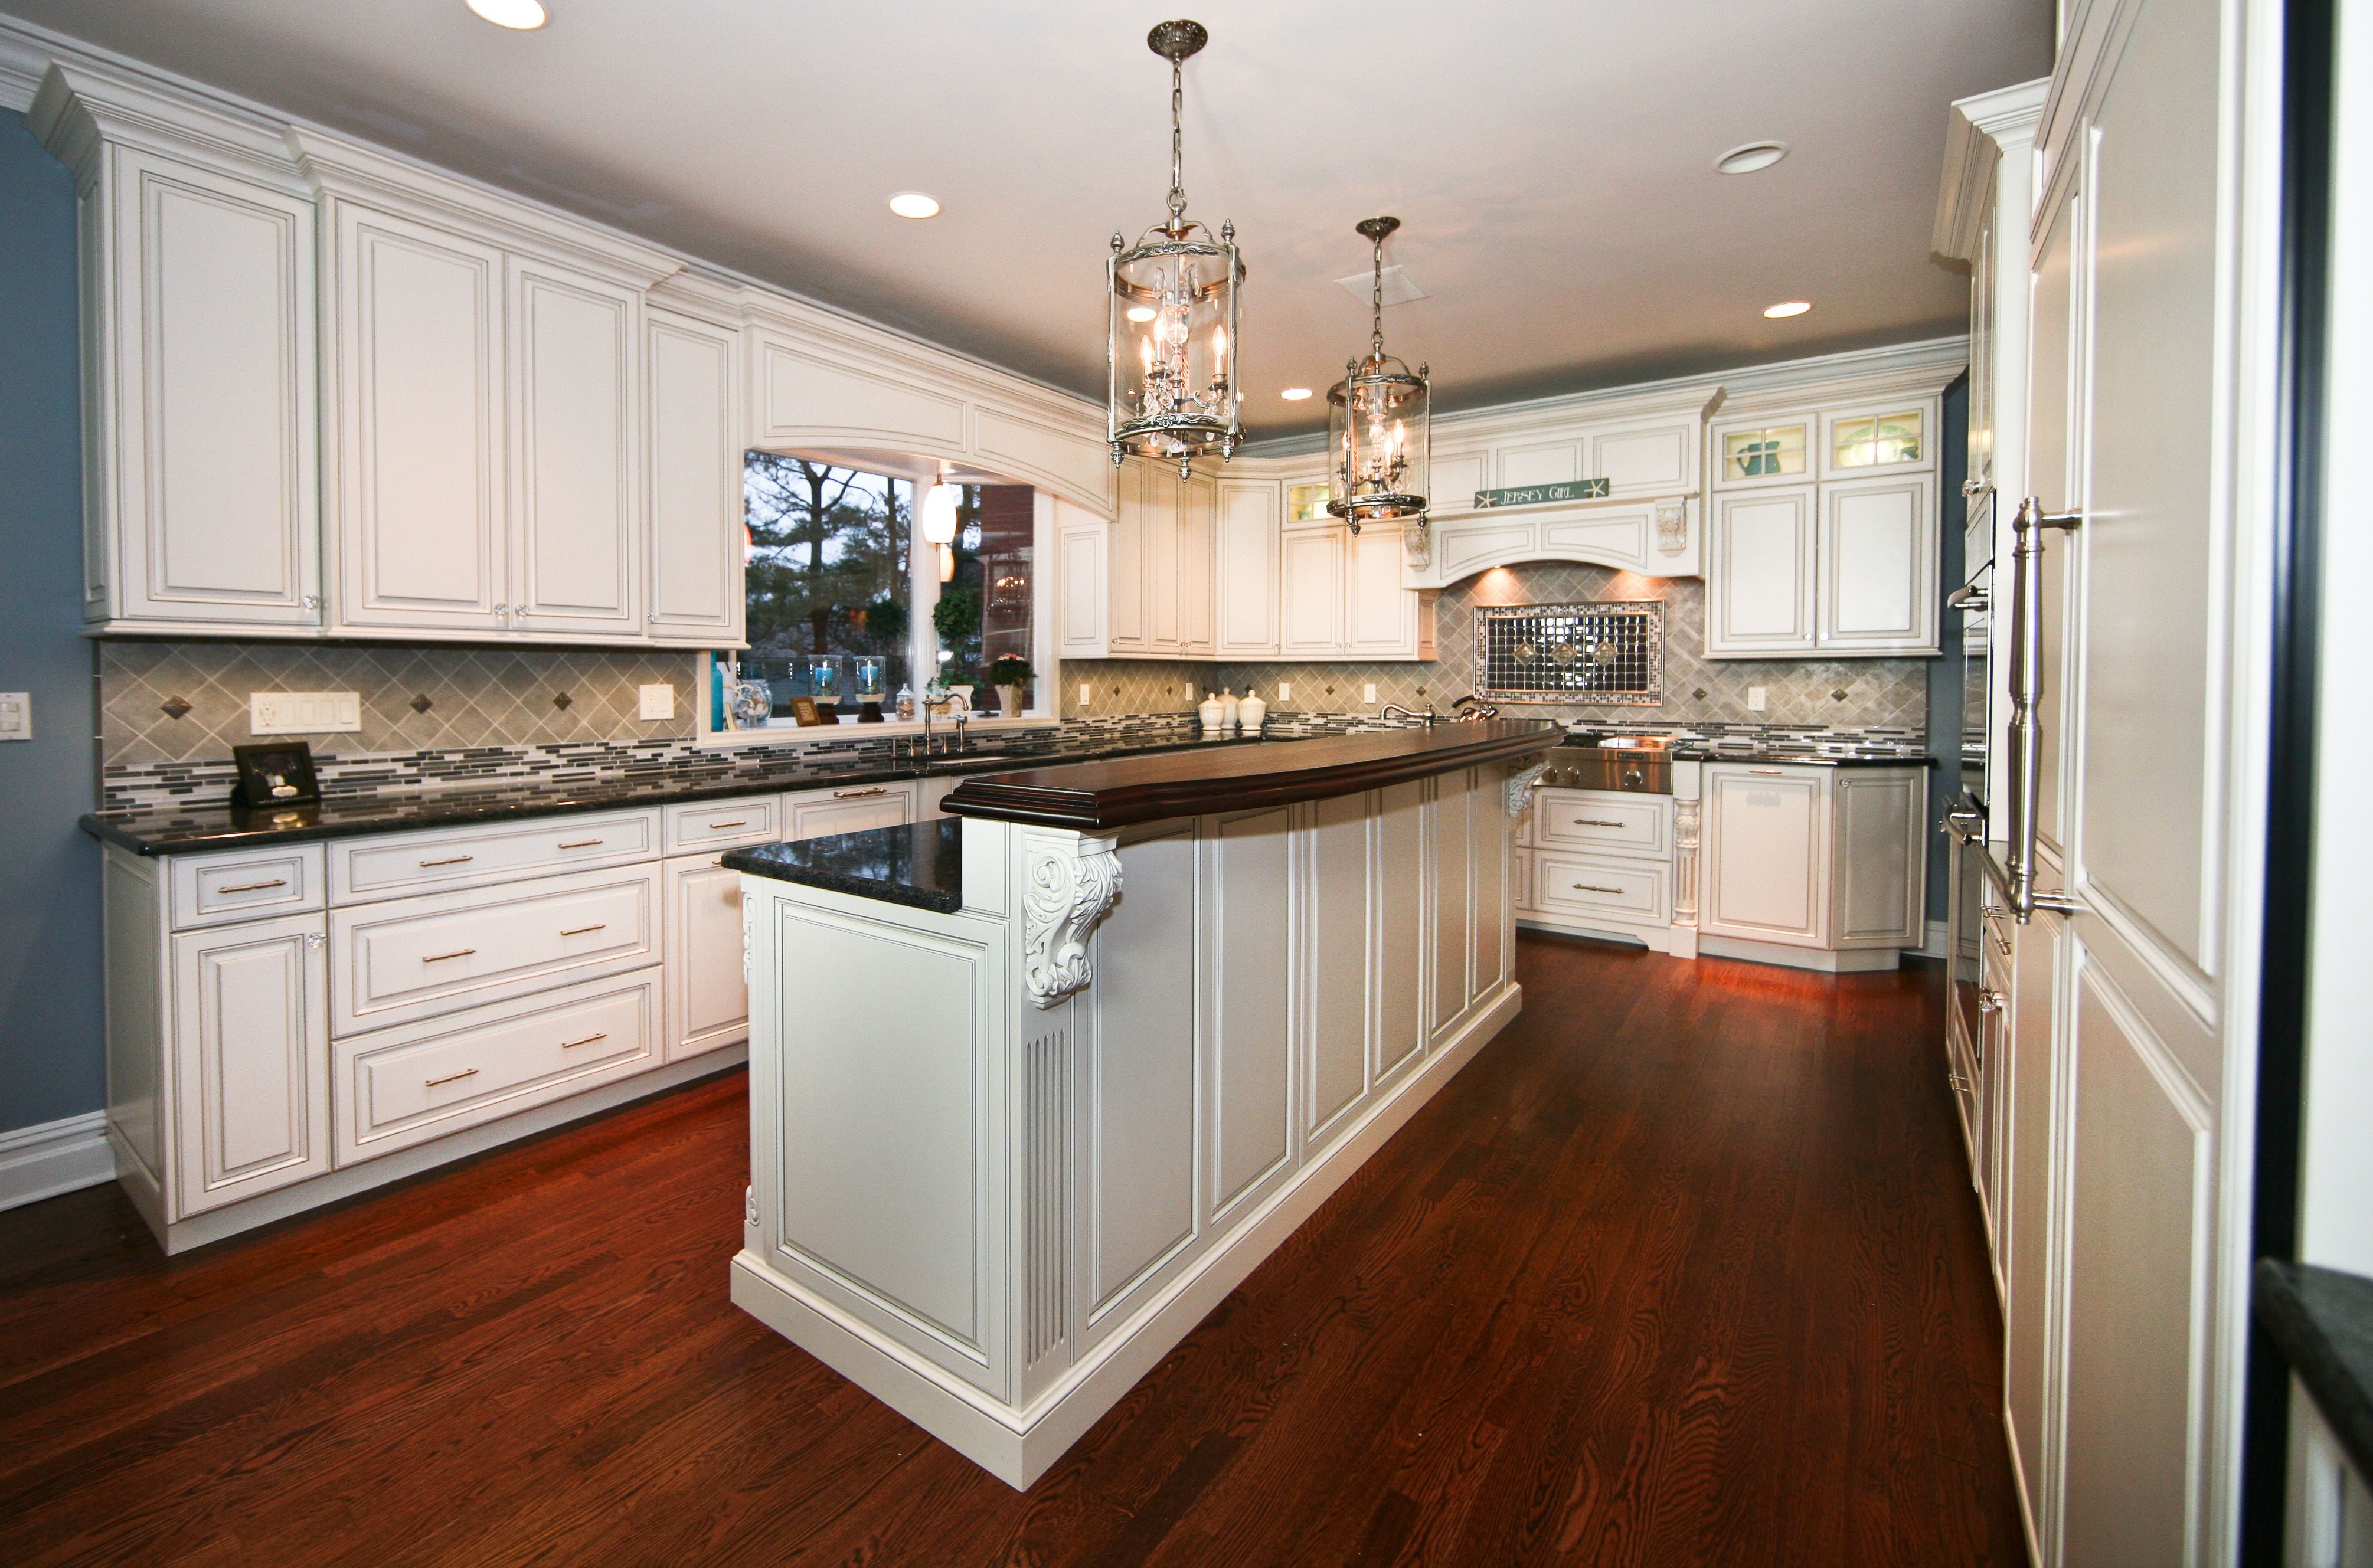 Image Result For Kitchen Island With Raised Bar Kitchen Island